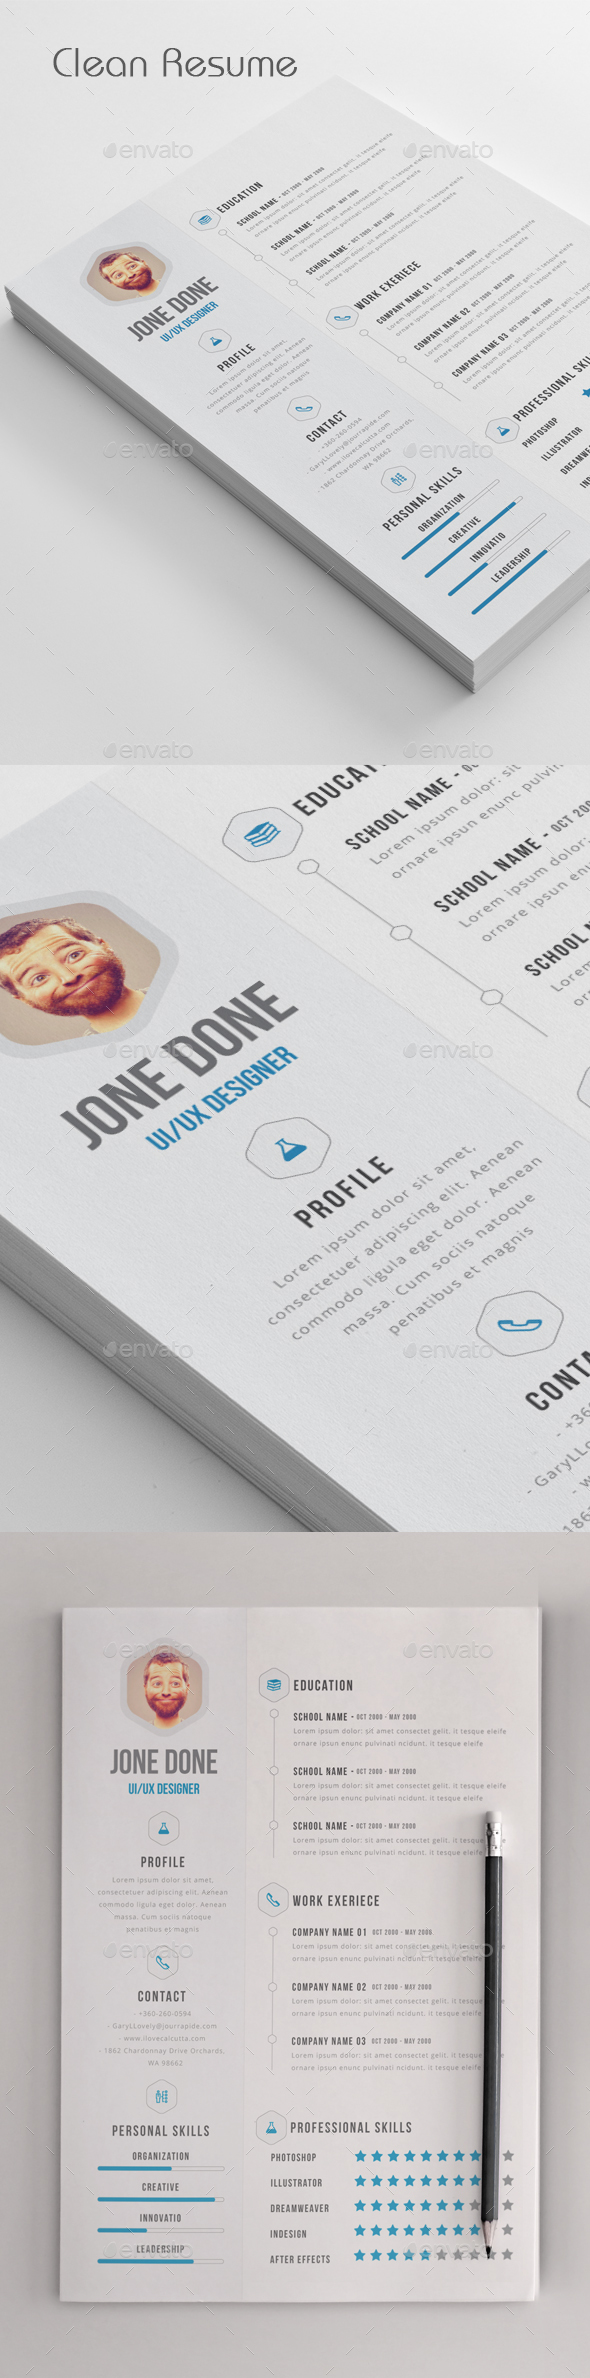 Clean Resume - Resumes Stationery